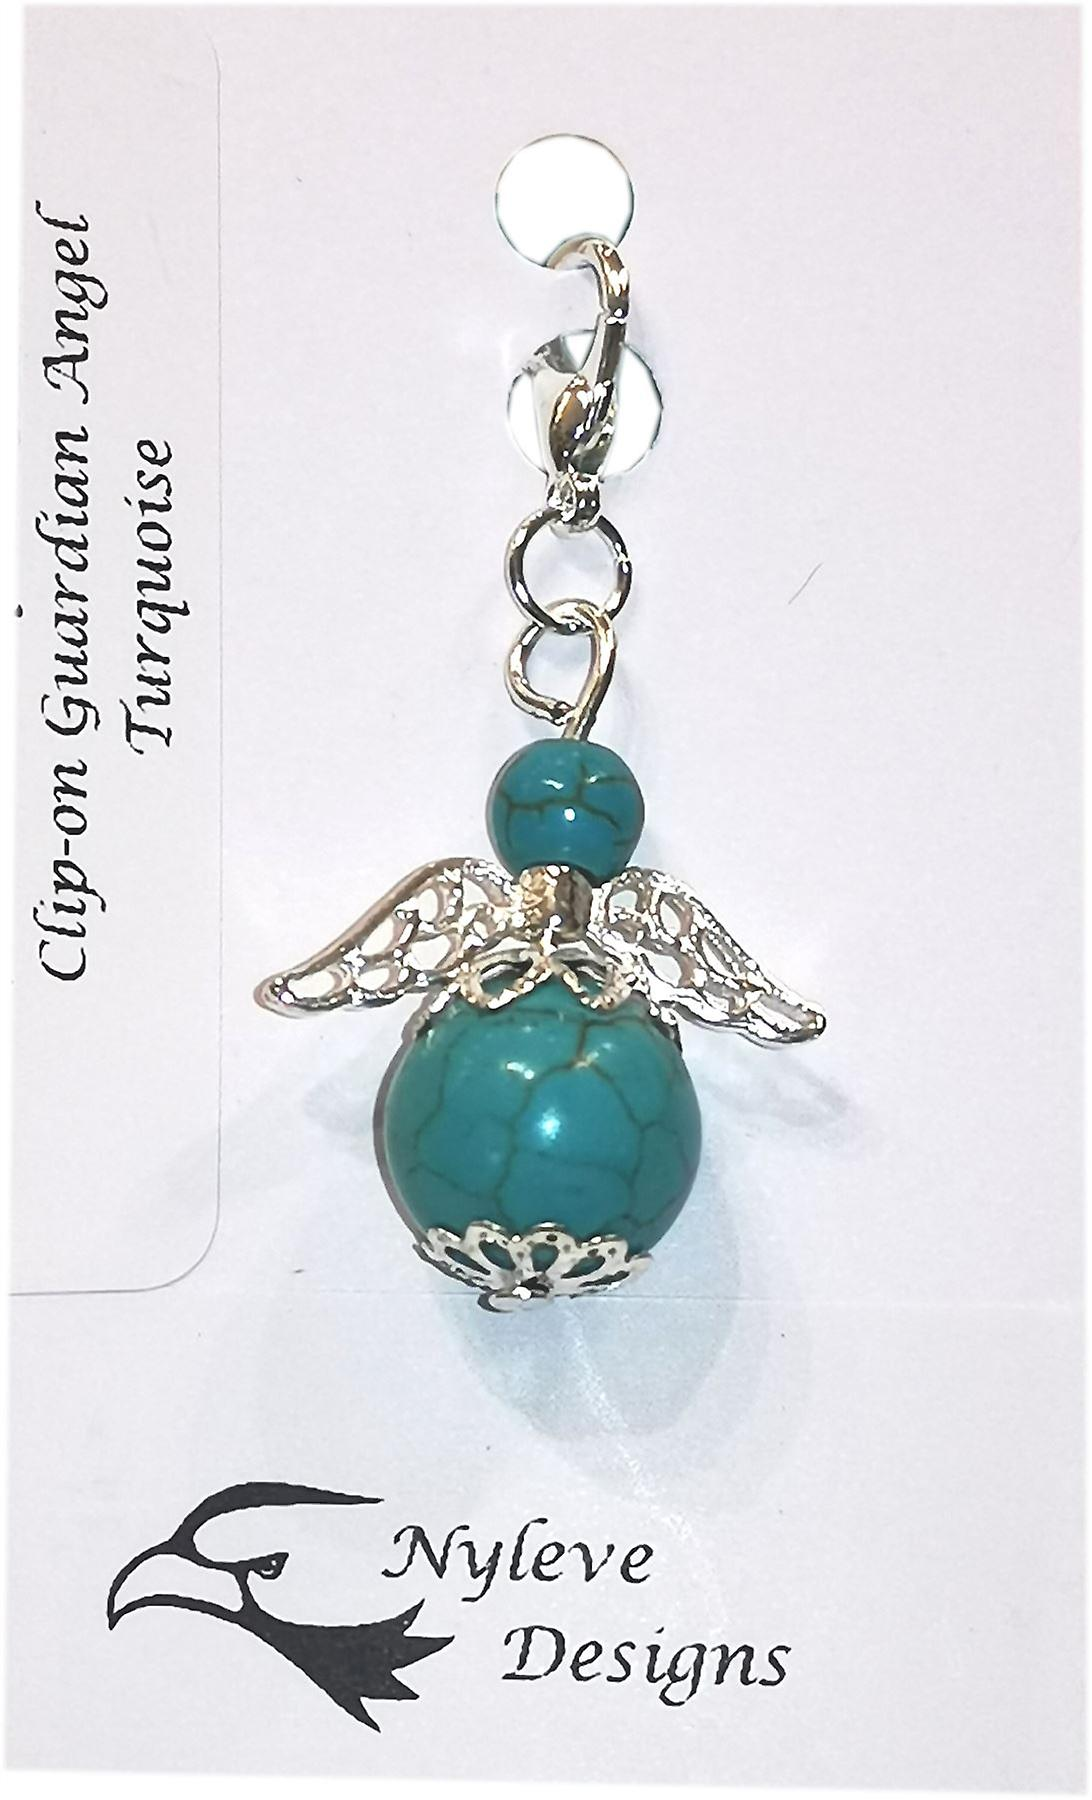 Nyleve Designs handmade Clip-on Semi-precious Turquoise Gemstone Guardian Angel in Silver Plated